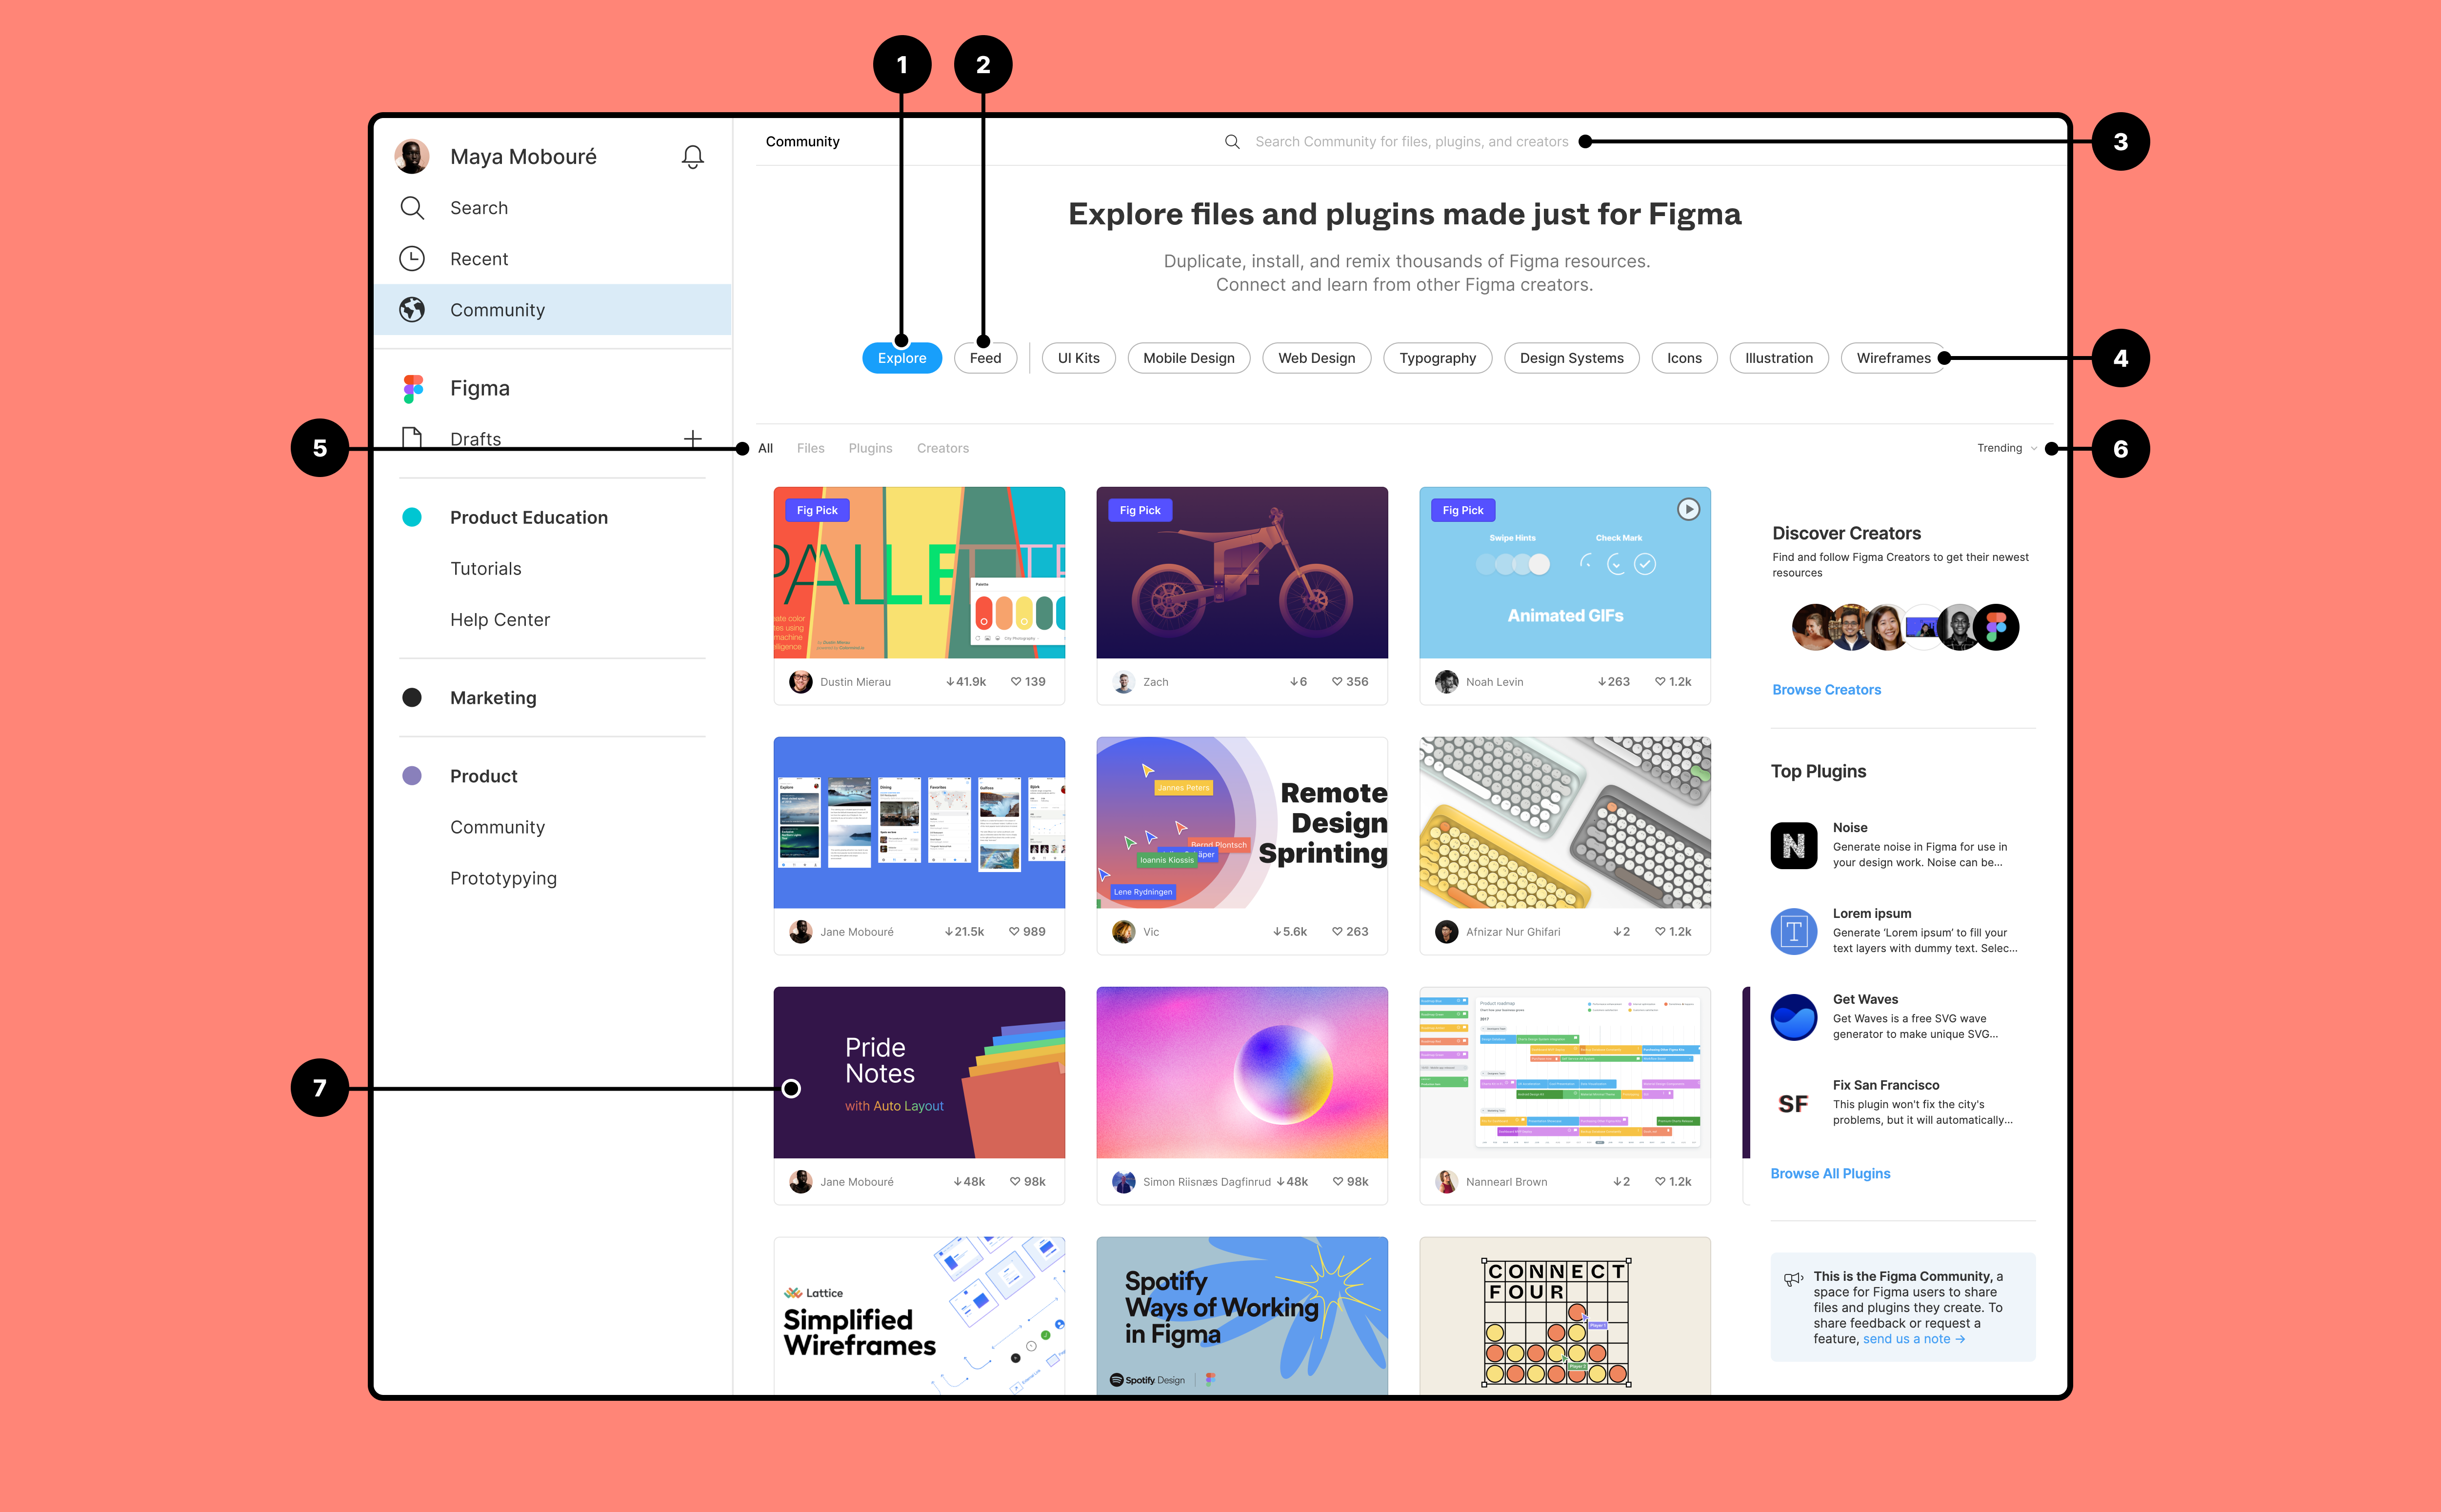 The explore page in the Figma Community